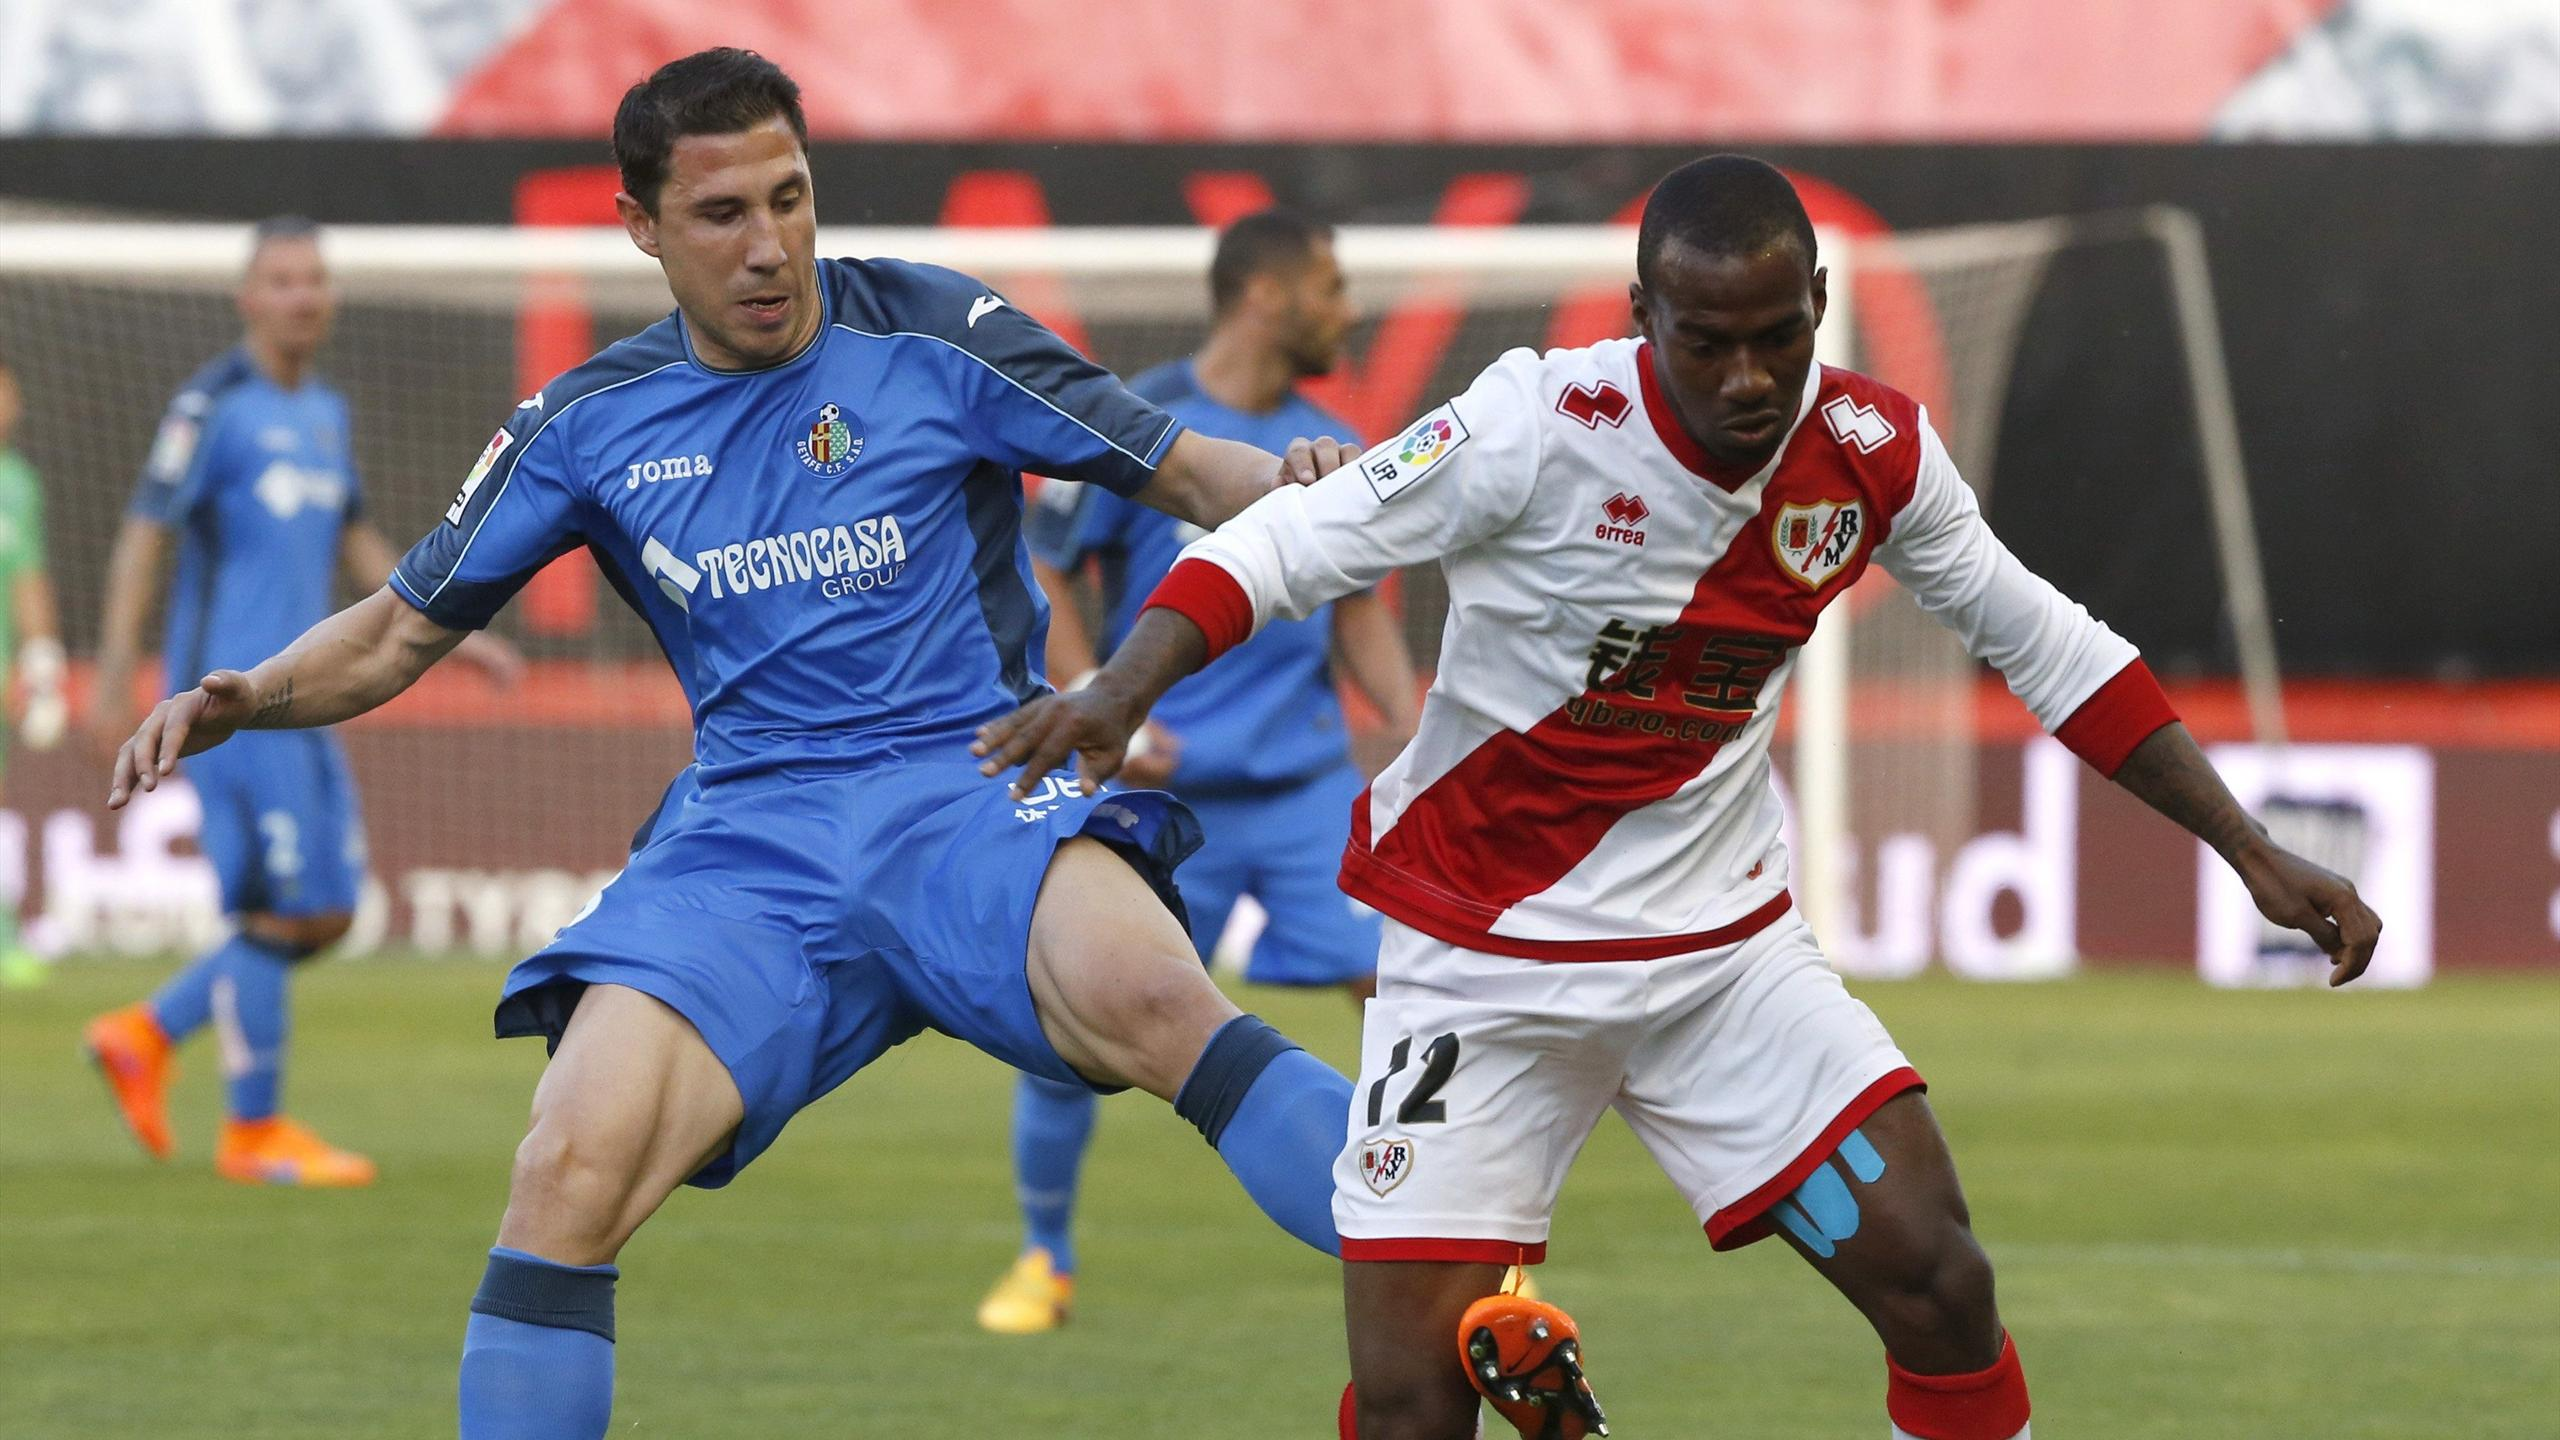 Video: Rayo Vallecano vs Getafe